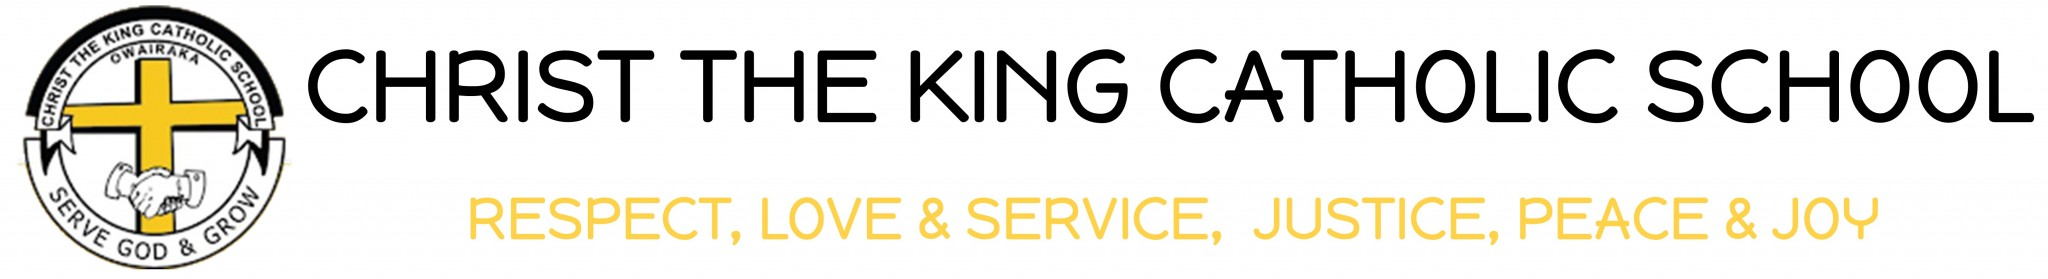 Christ The King Catholic School Logo